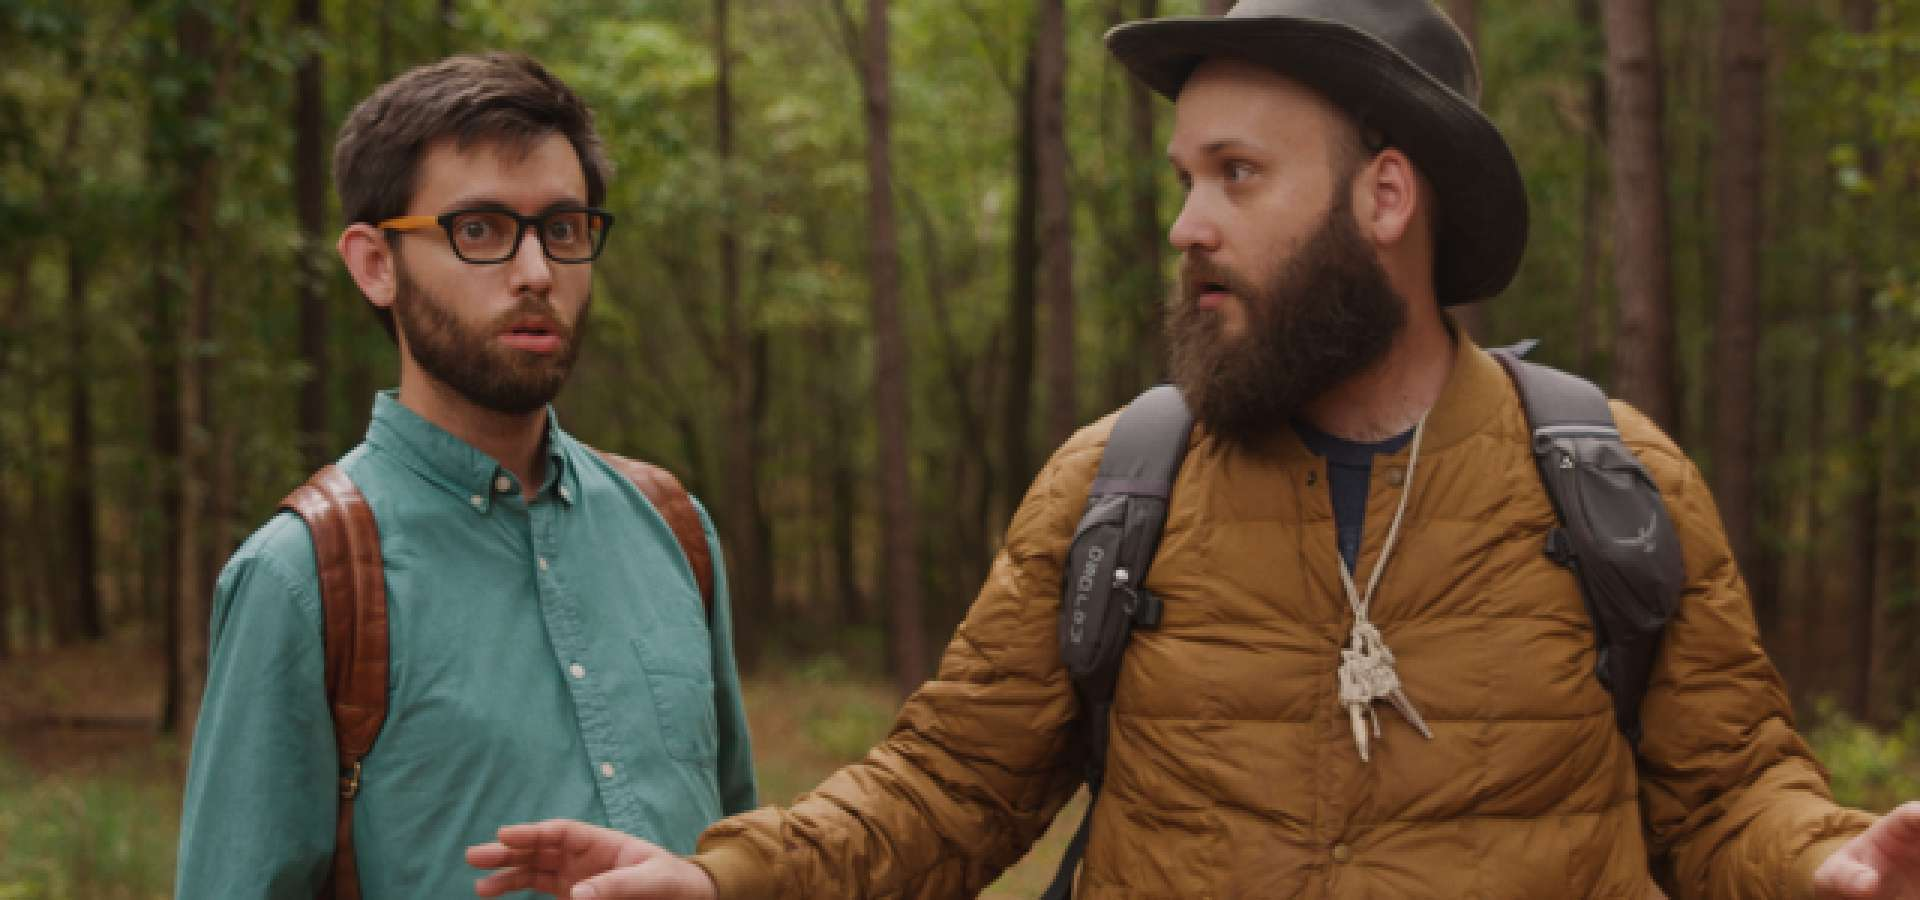 [CFF 2020] 'The VICE Guide to Bigfoot' Review: A funny look at unfulfilled aspirations and clickbait journalism